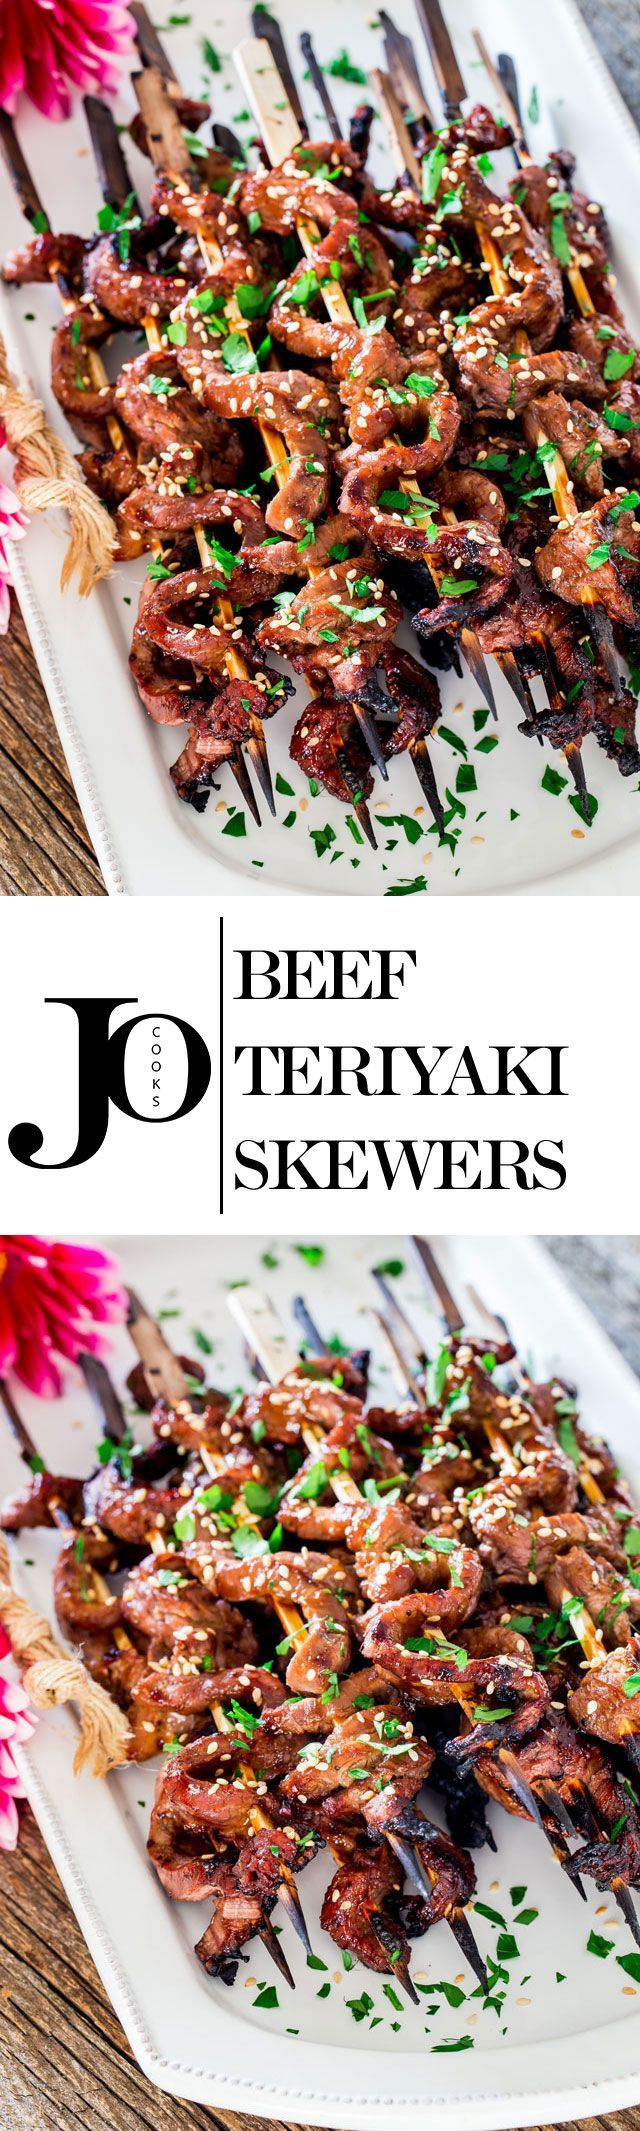 When these Beef Teriyaki Skewers are sizzling on your grill, the aroma will make everyone around you stop what they're doing and come for a taste of these easy to make flank steak skewers with homemade teriyaki sauce.